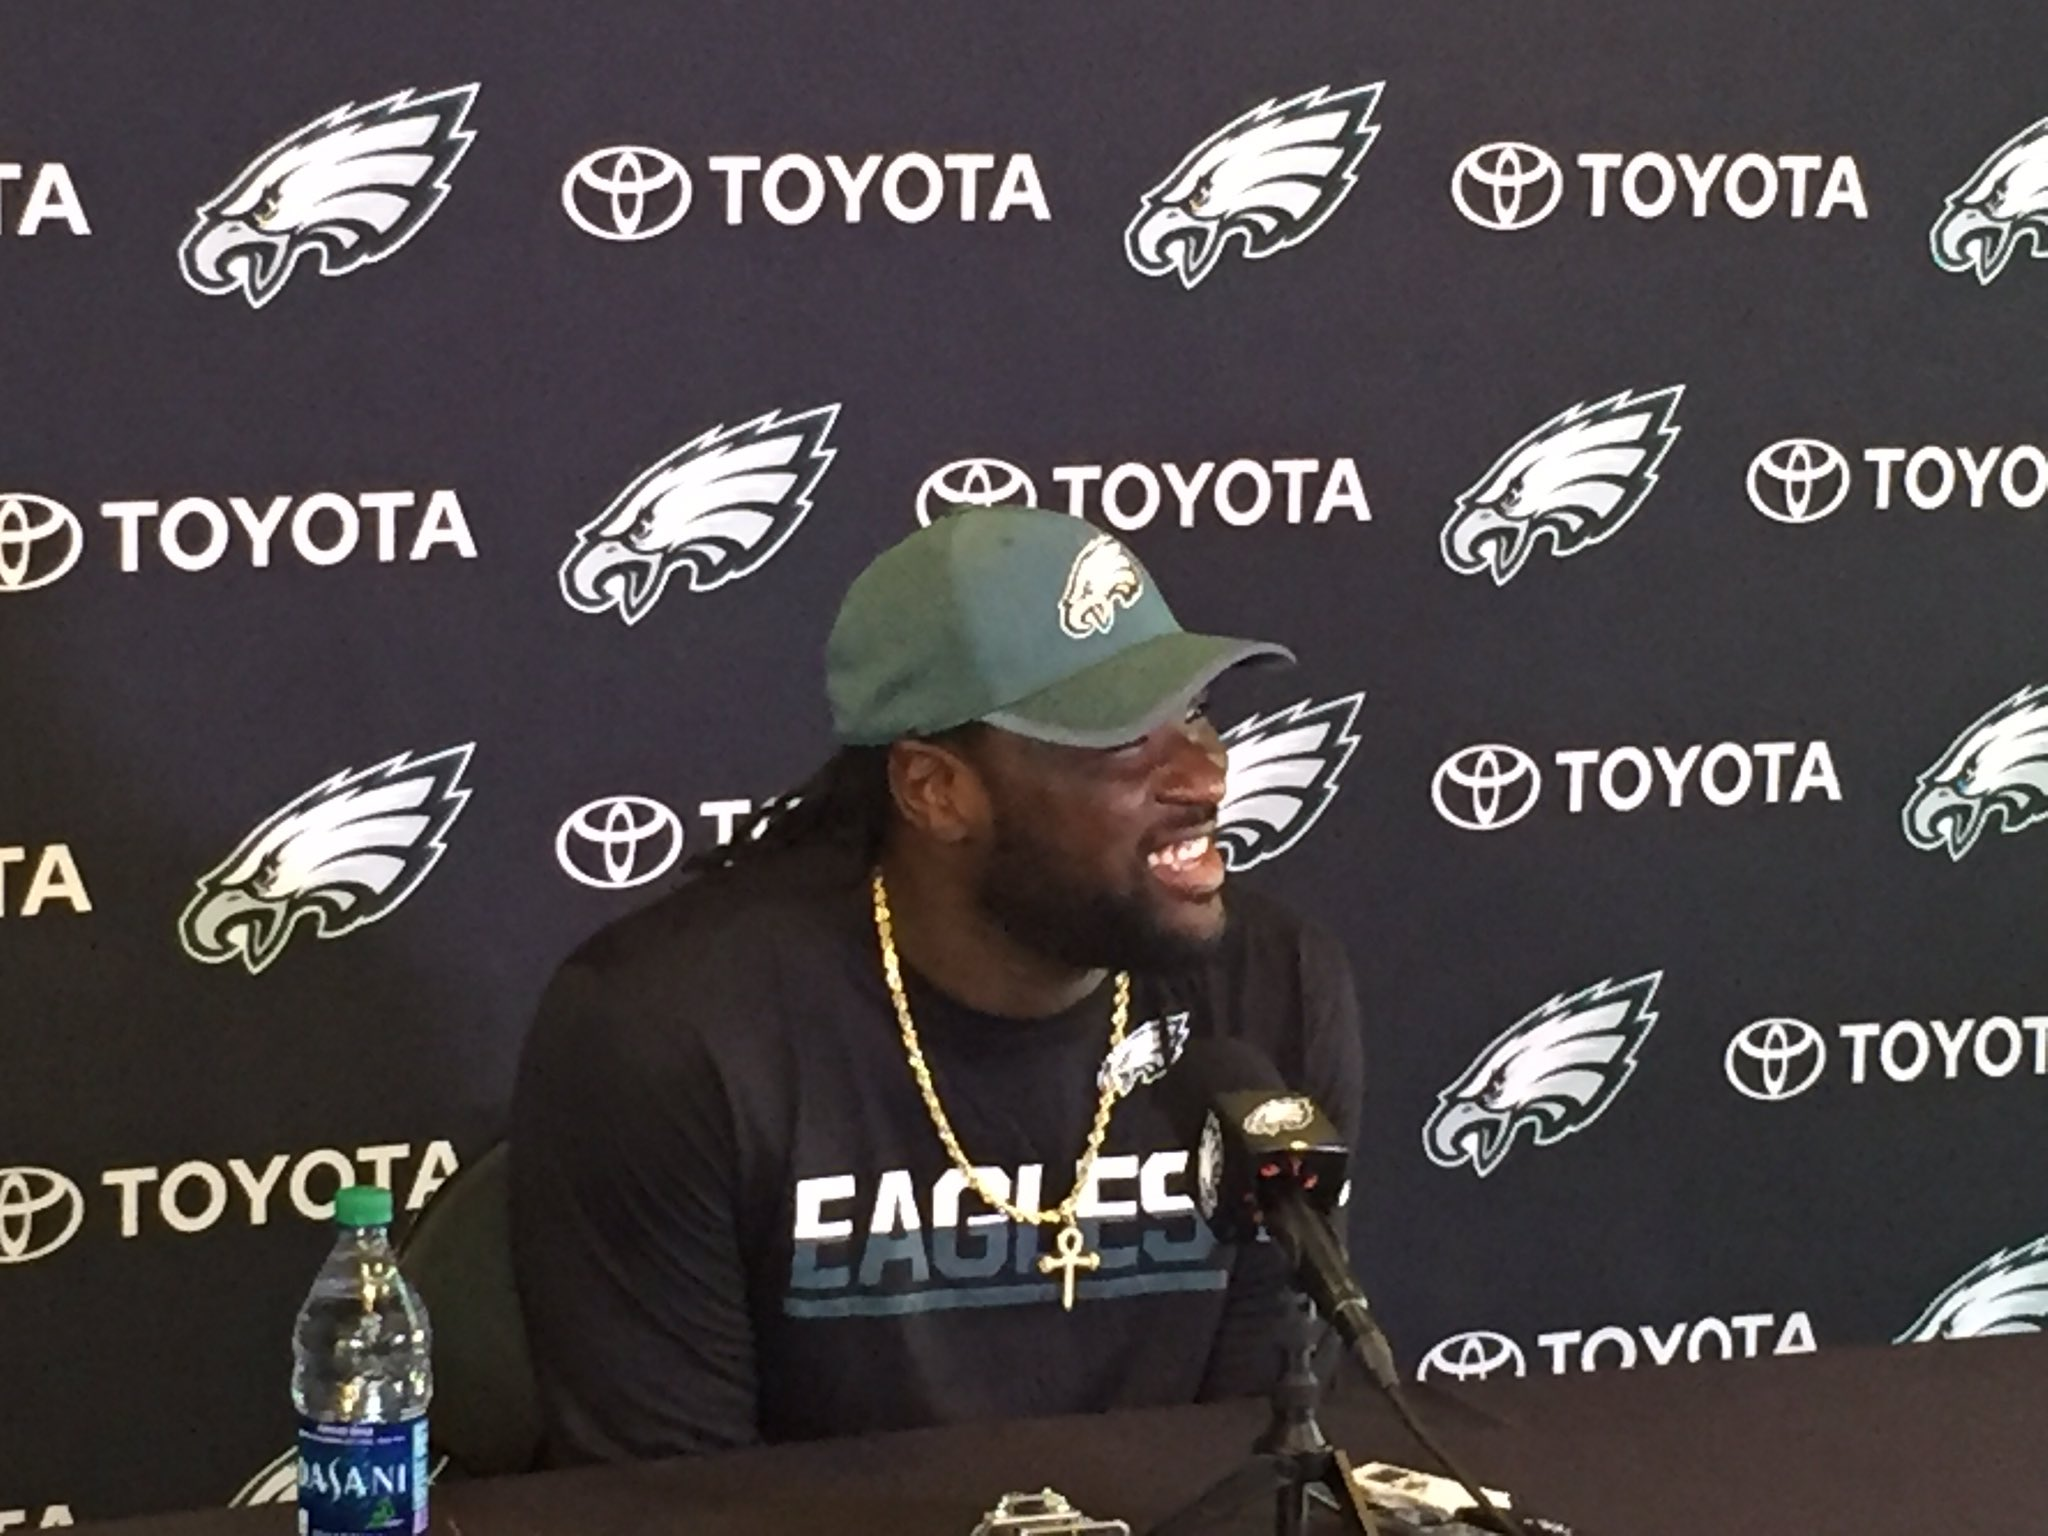 .@LG_Blount: 'I chose Philly because I thought it was the best fit for me.' #FlyEaglesFly https://t.co/GyCWsTdAyh